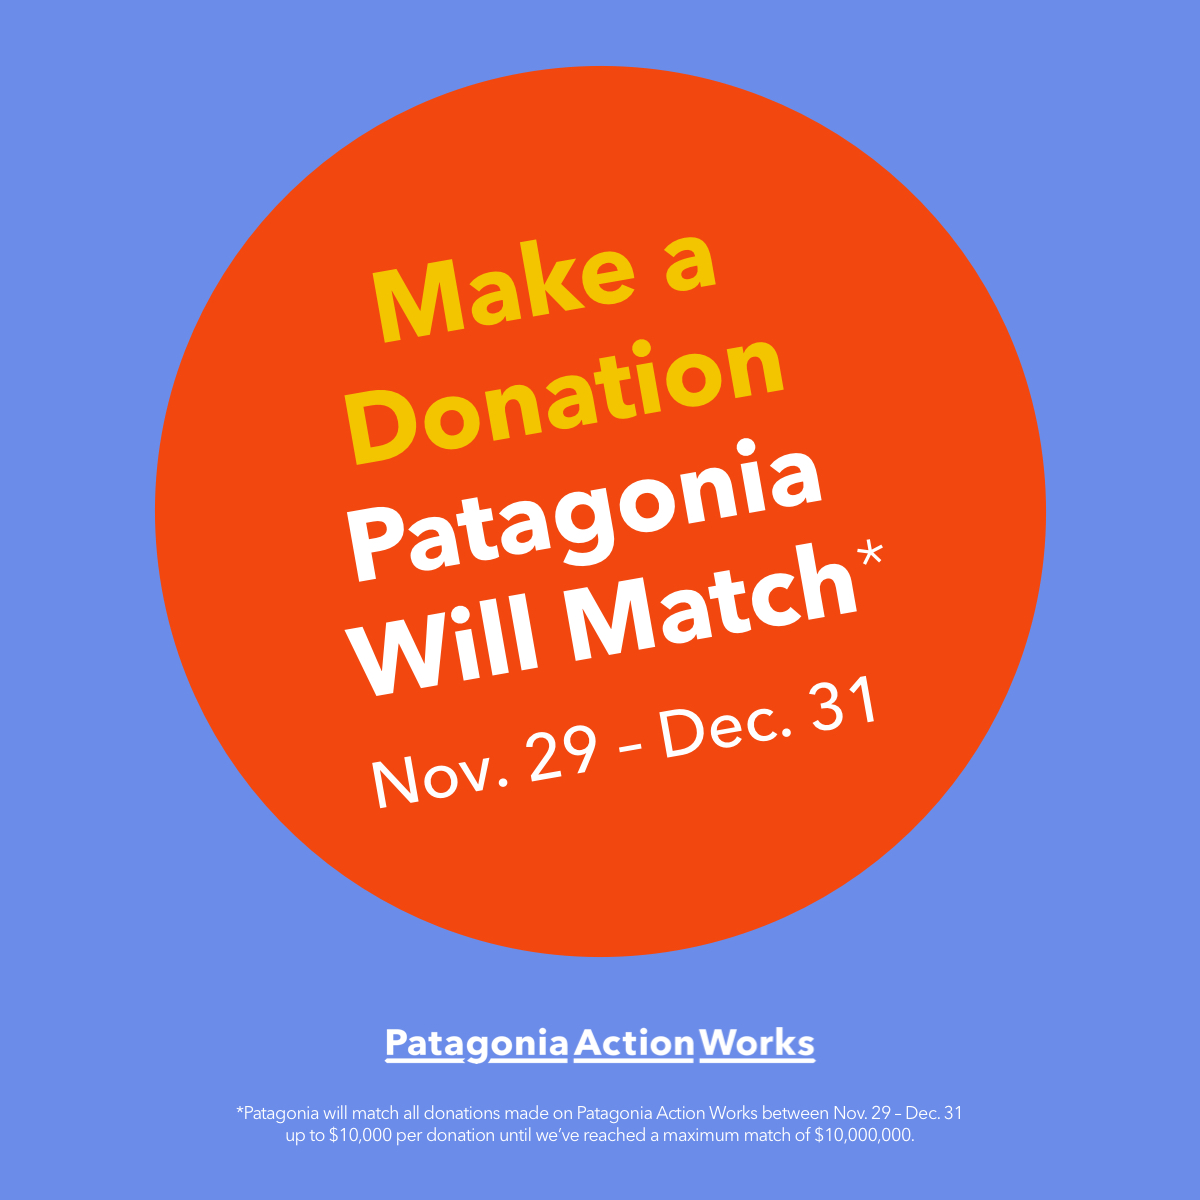 Its Giving Tuesday! And @patagonia is matching your donations till December 31.⁣ ⁣ Help protect the Boundary Waters by donating through the Patagonia Action Works page and your gift will be matched! Donate here: patagonia.com/actionworks/gr…